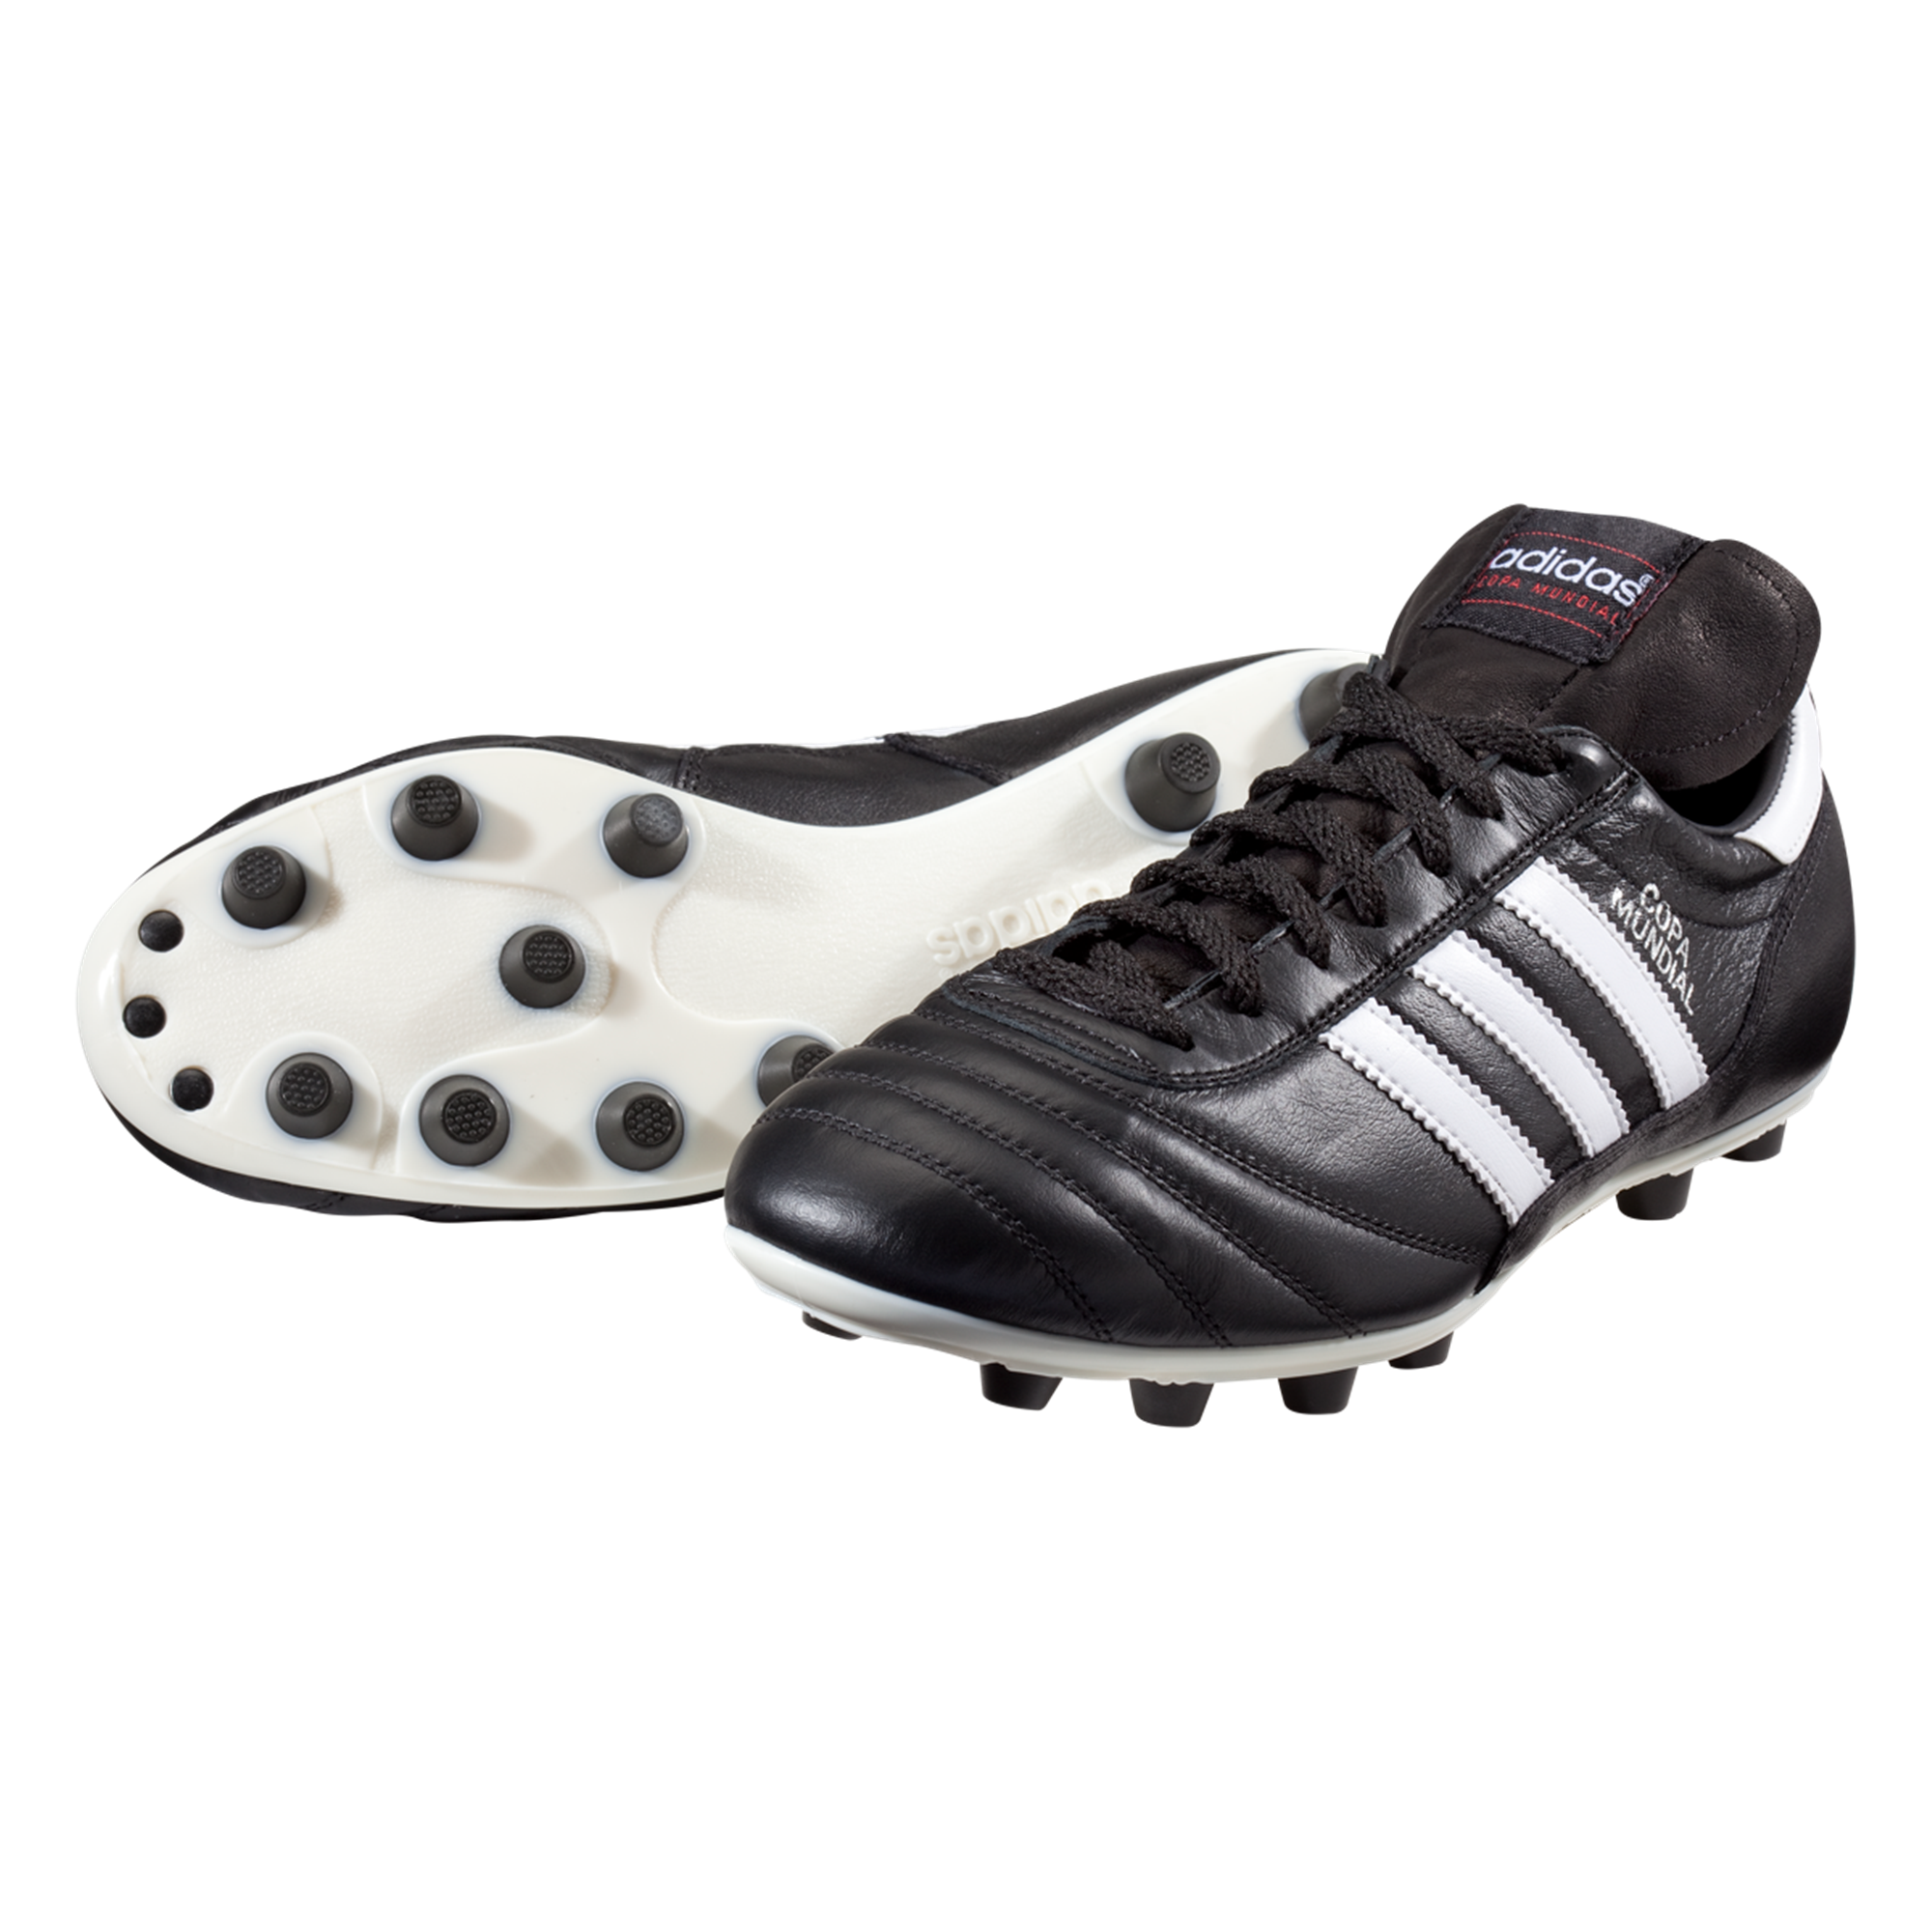 Adidas Copa Mundial Soccer Cleat Black Soccer Com Soccer Boots Cleats Soccer Cleats